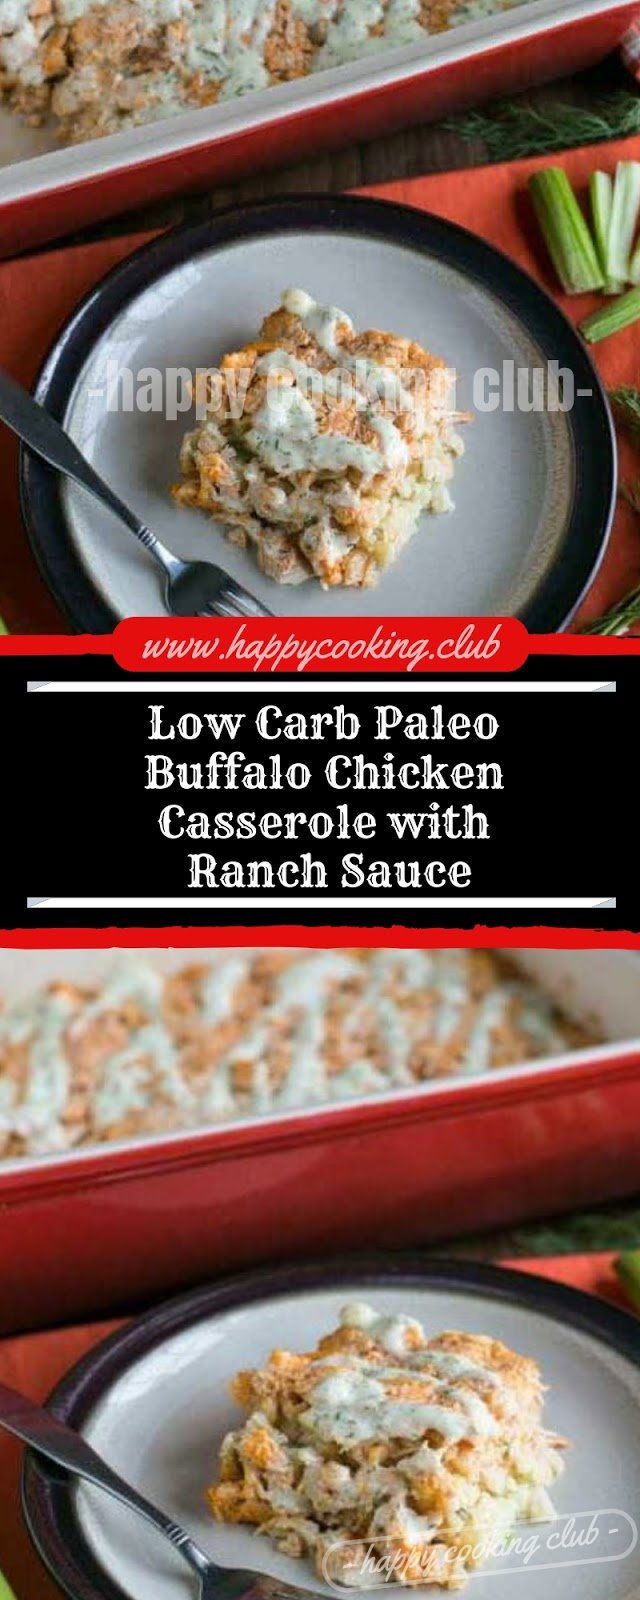 Low Carb Paleo Buffalo Chicken Casserole with Ranch Sauce